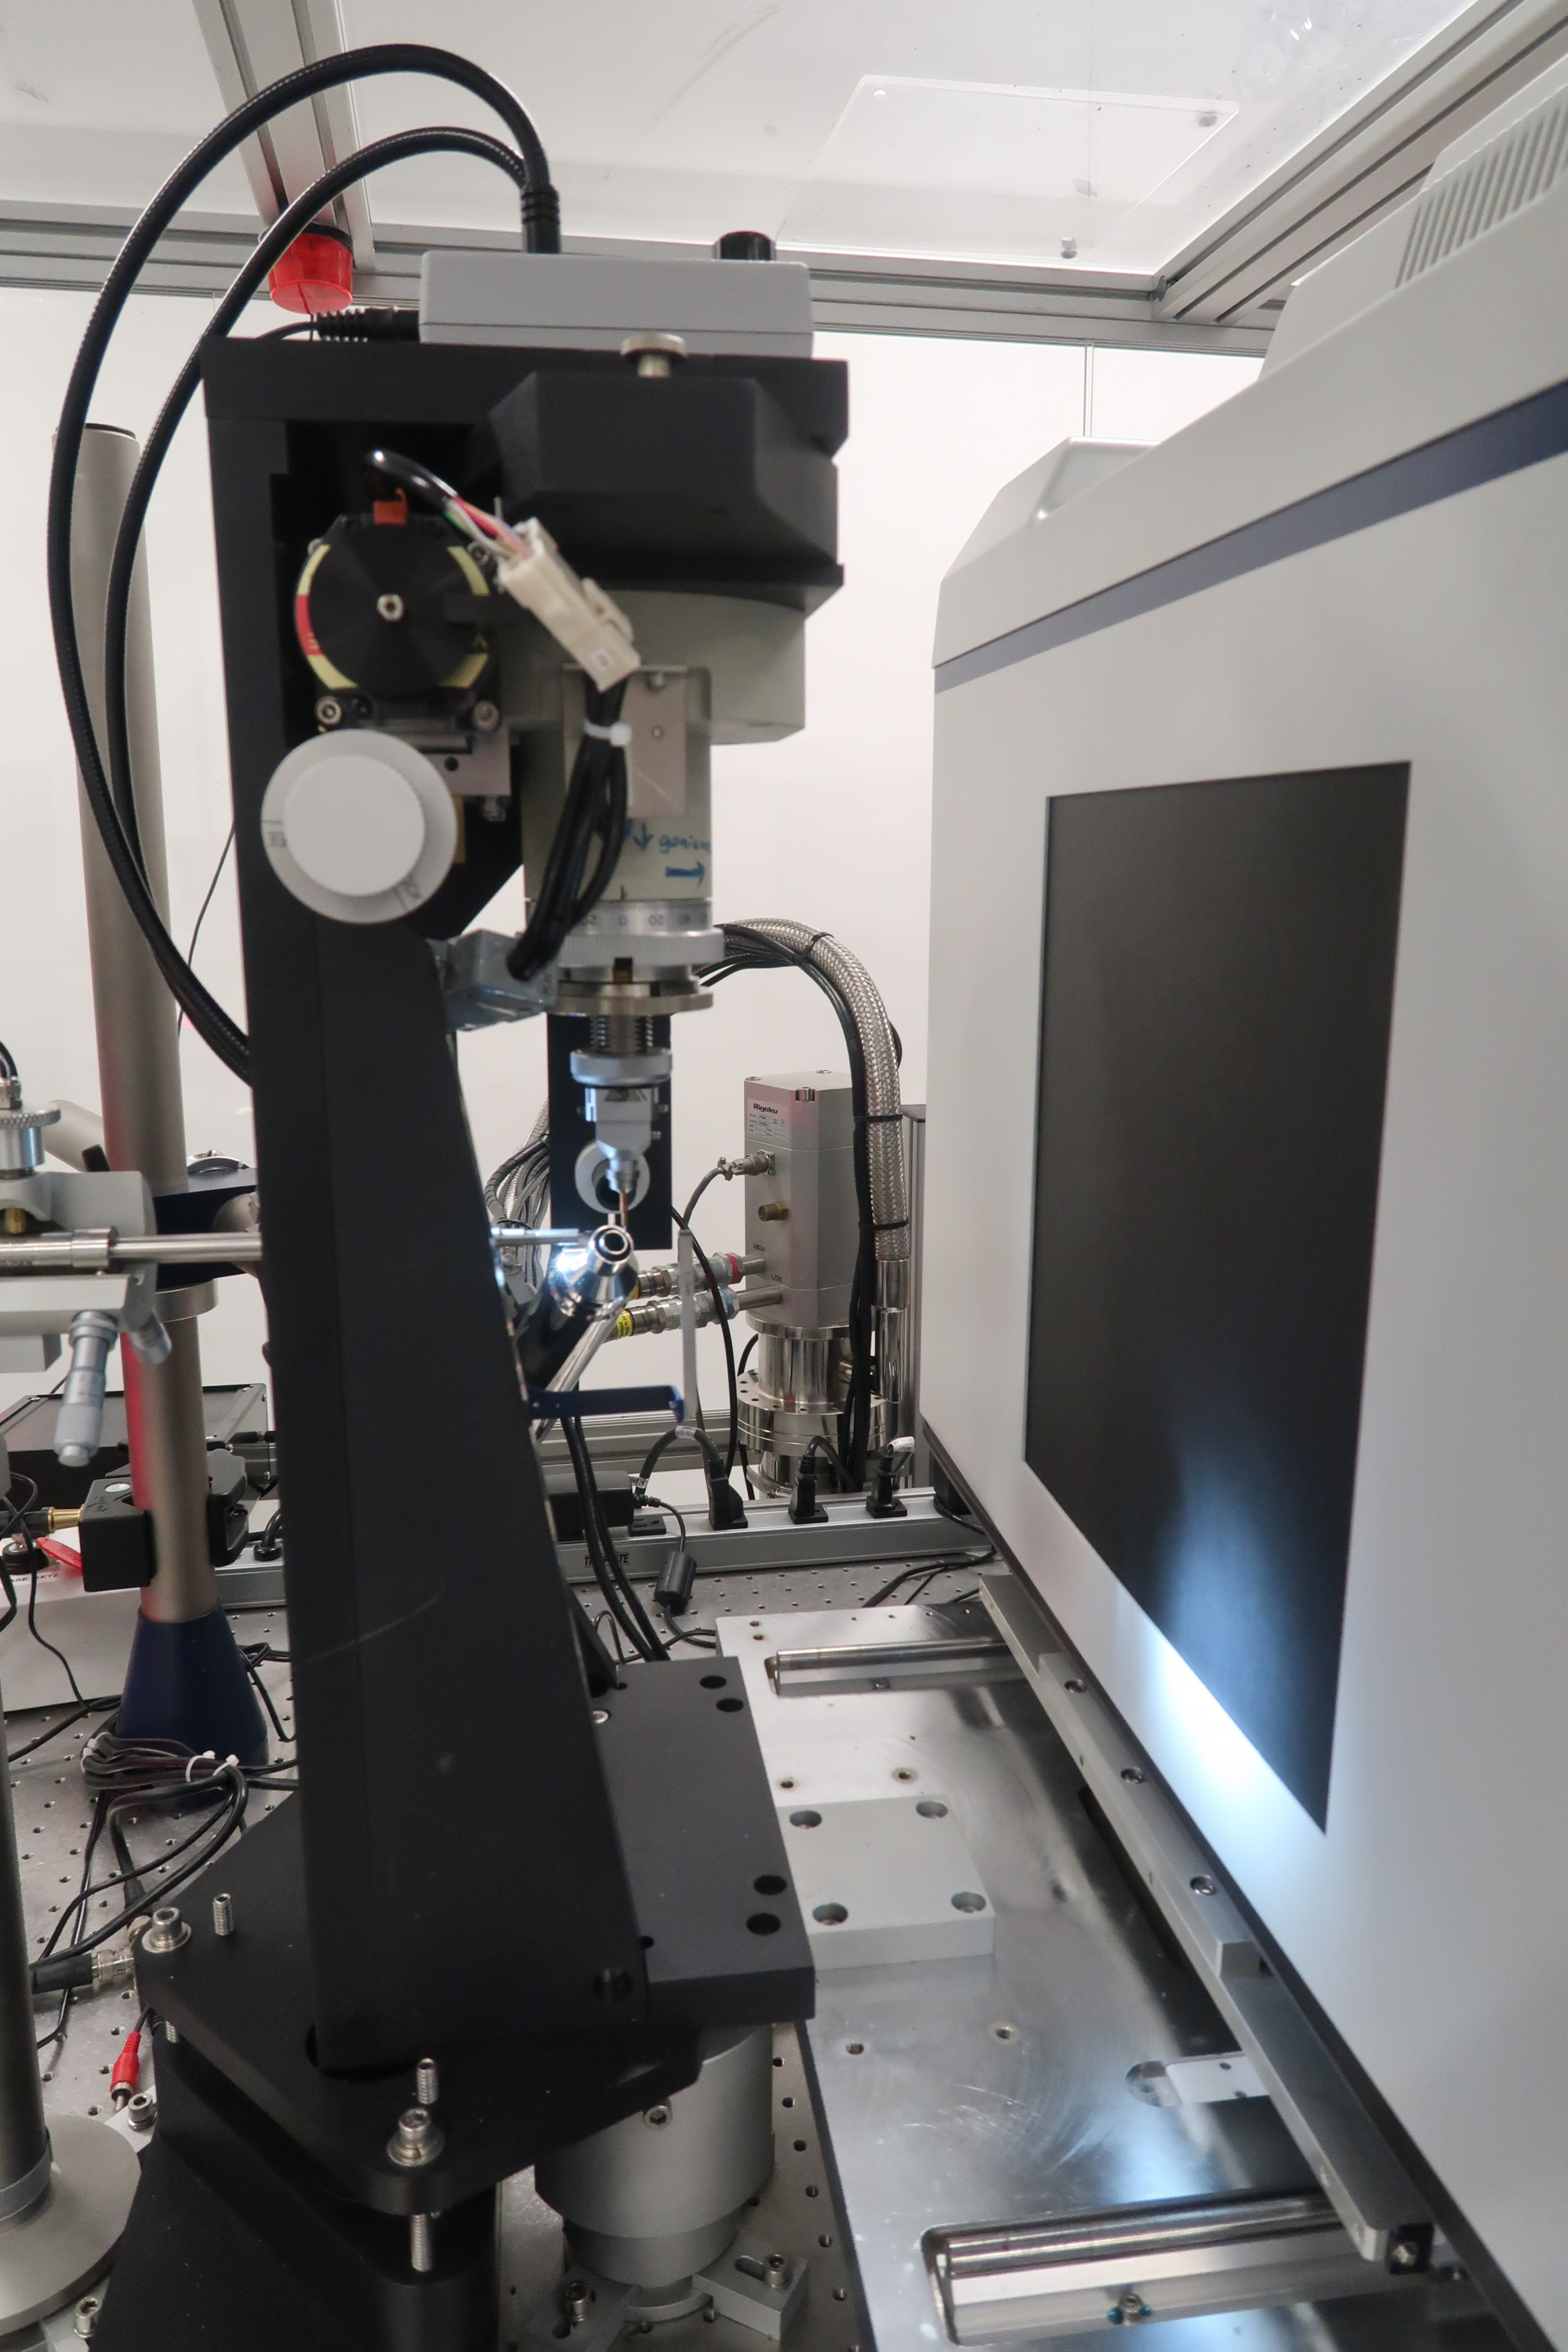 X-ray diffractometer.